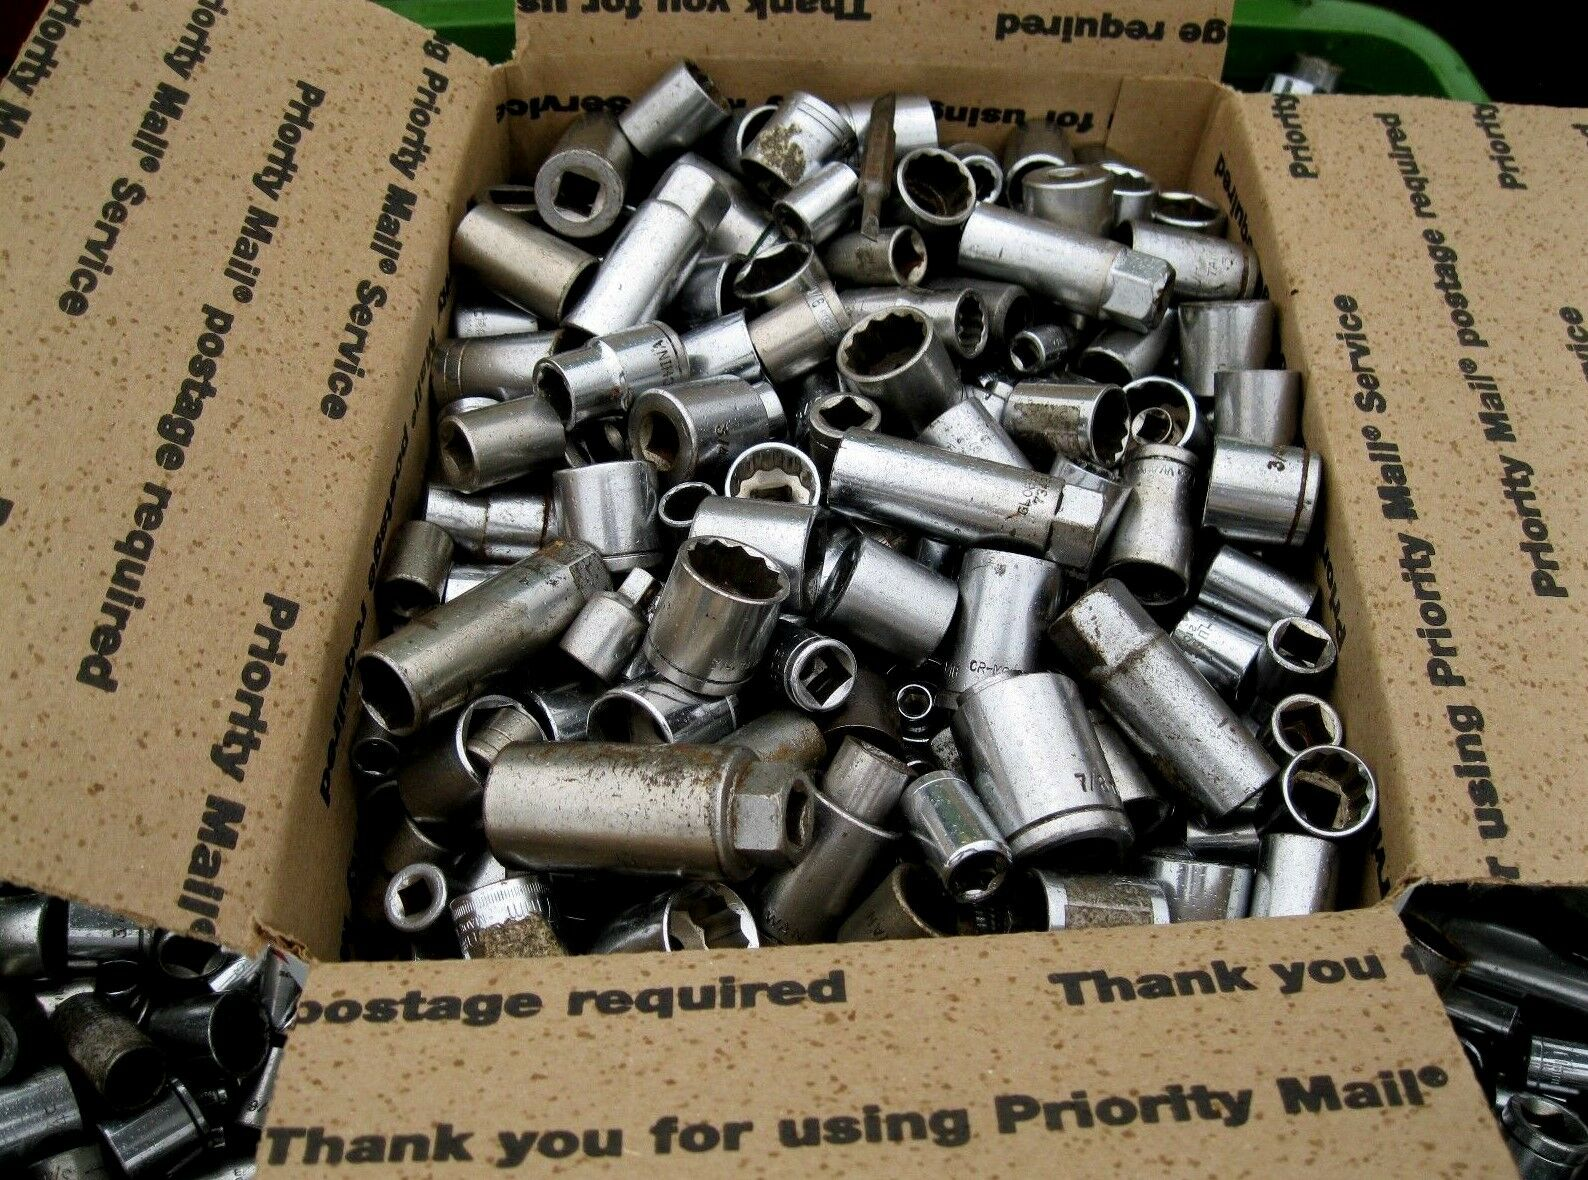 700 Sockets for socket wrenches GREAT ITEM FOR FLEA MARKETS ETC.